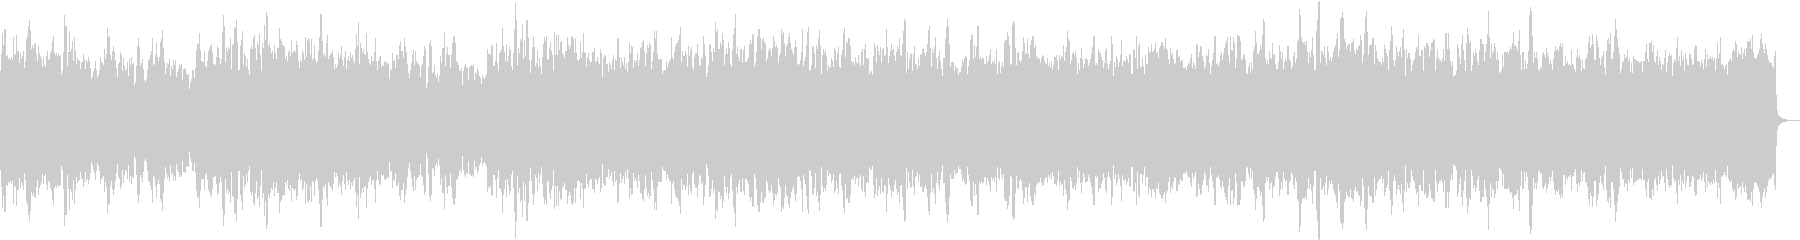 Aria pipe organ playing on G line's unreproduced waveform